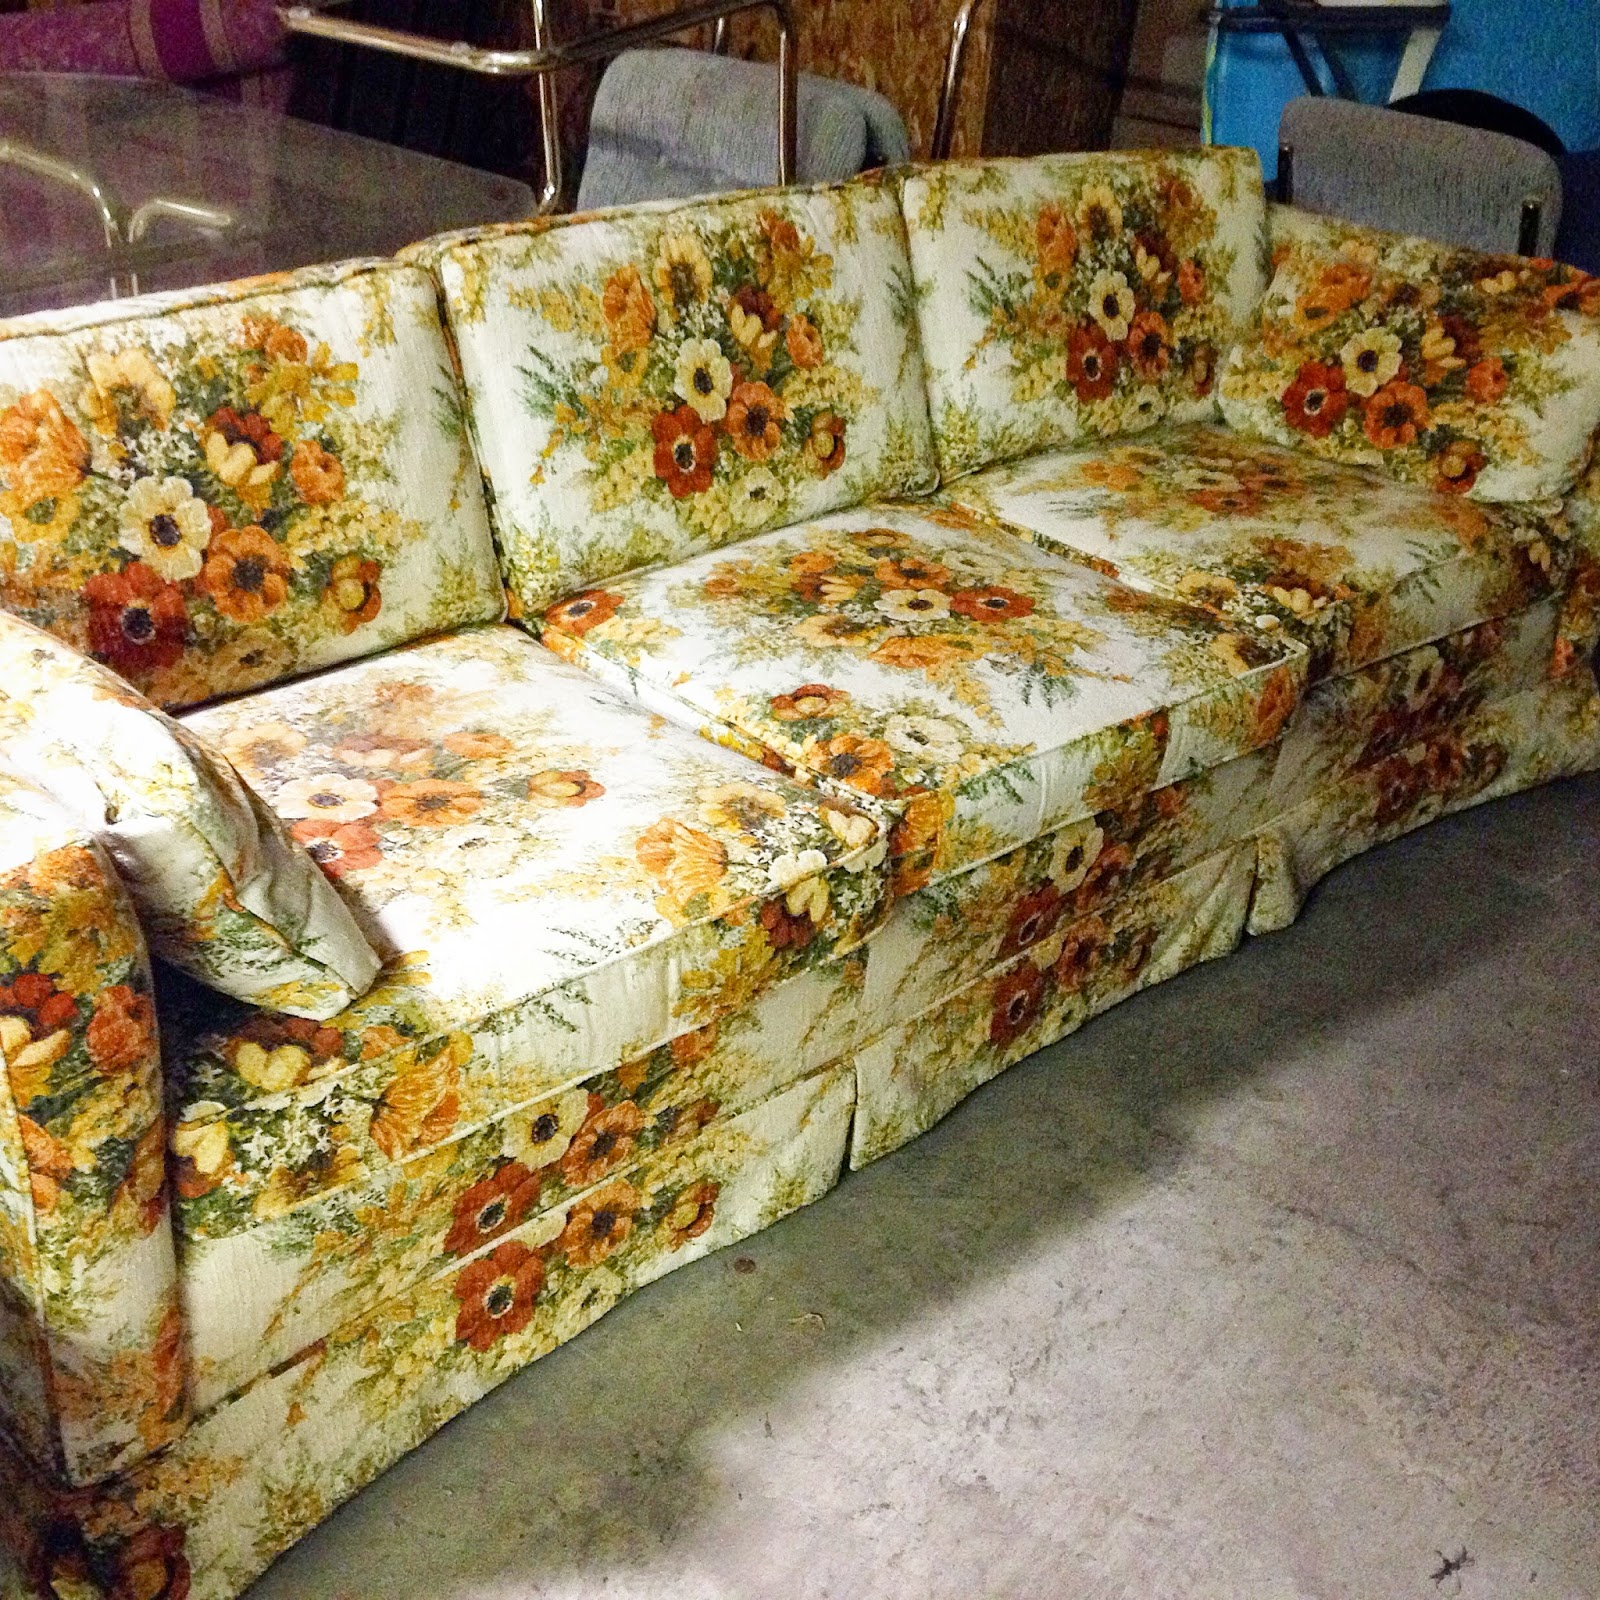 What You Donu0027t See It? Look Again. The Sleek Square Back And Seat Cushions,  The Side Pillows, The Length. Well, I Picked Up This Vintage Ethan Allen  Sofa ...